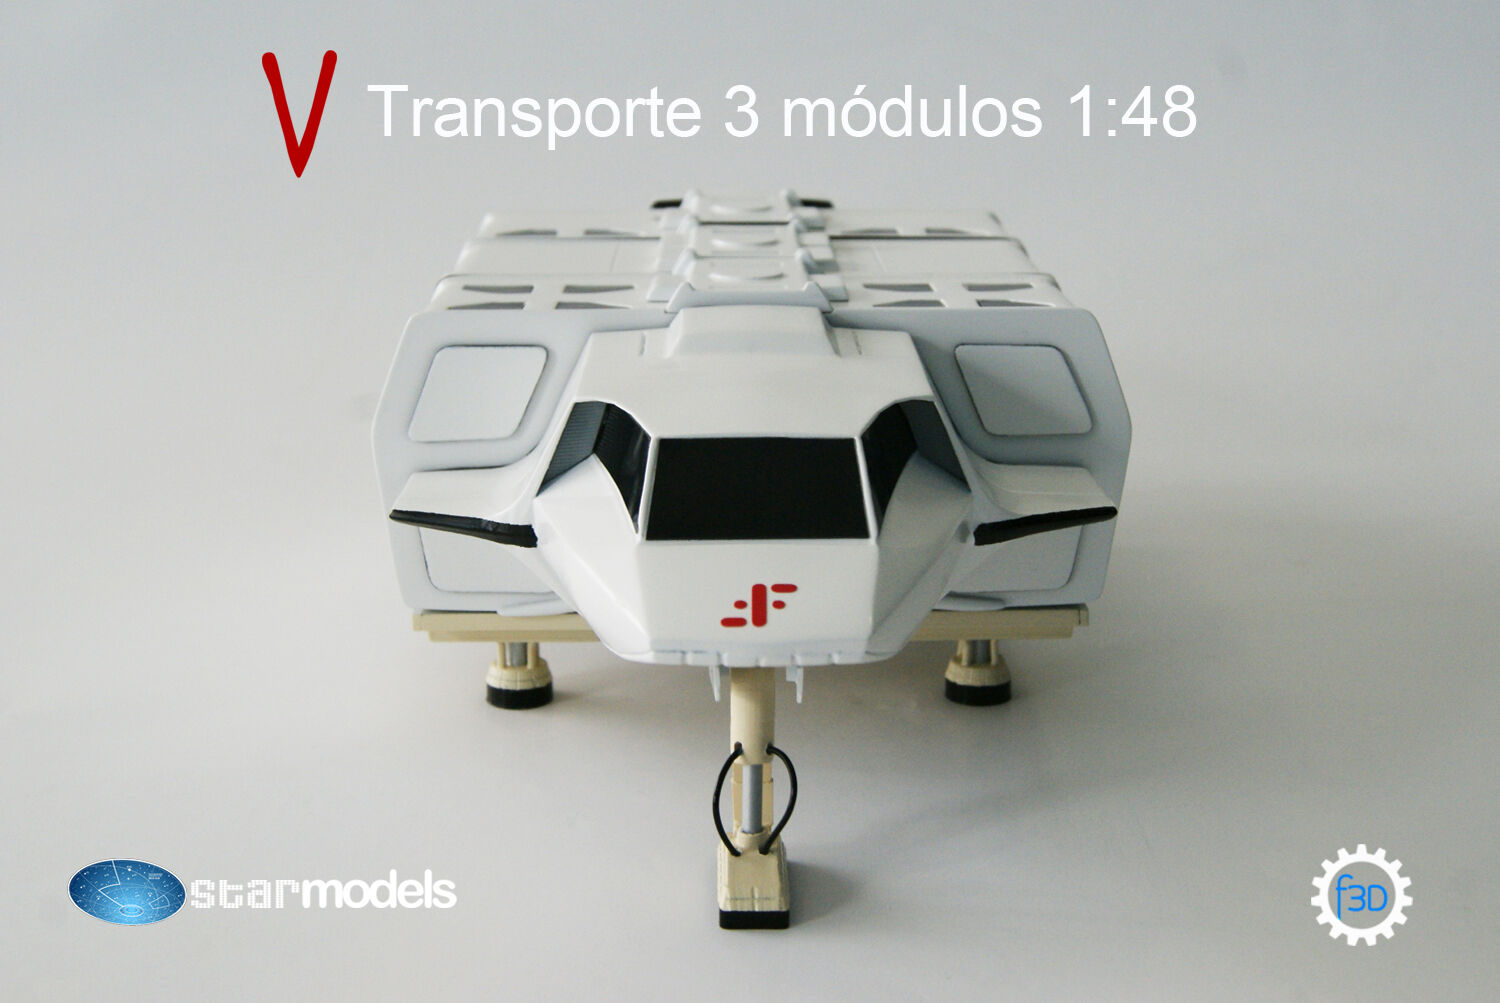 V The Visitors 3 Pod Shuttle 1:48 .Transporte de V Los Visitantes maqueta 1:48